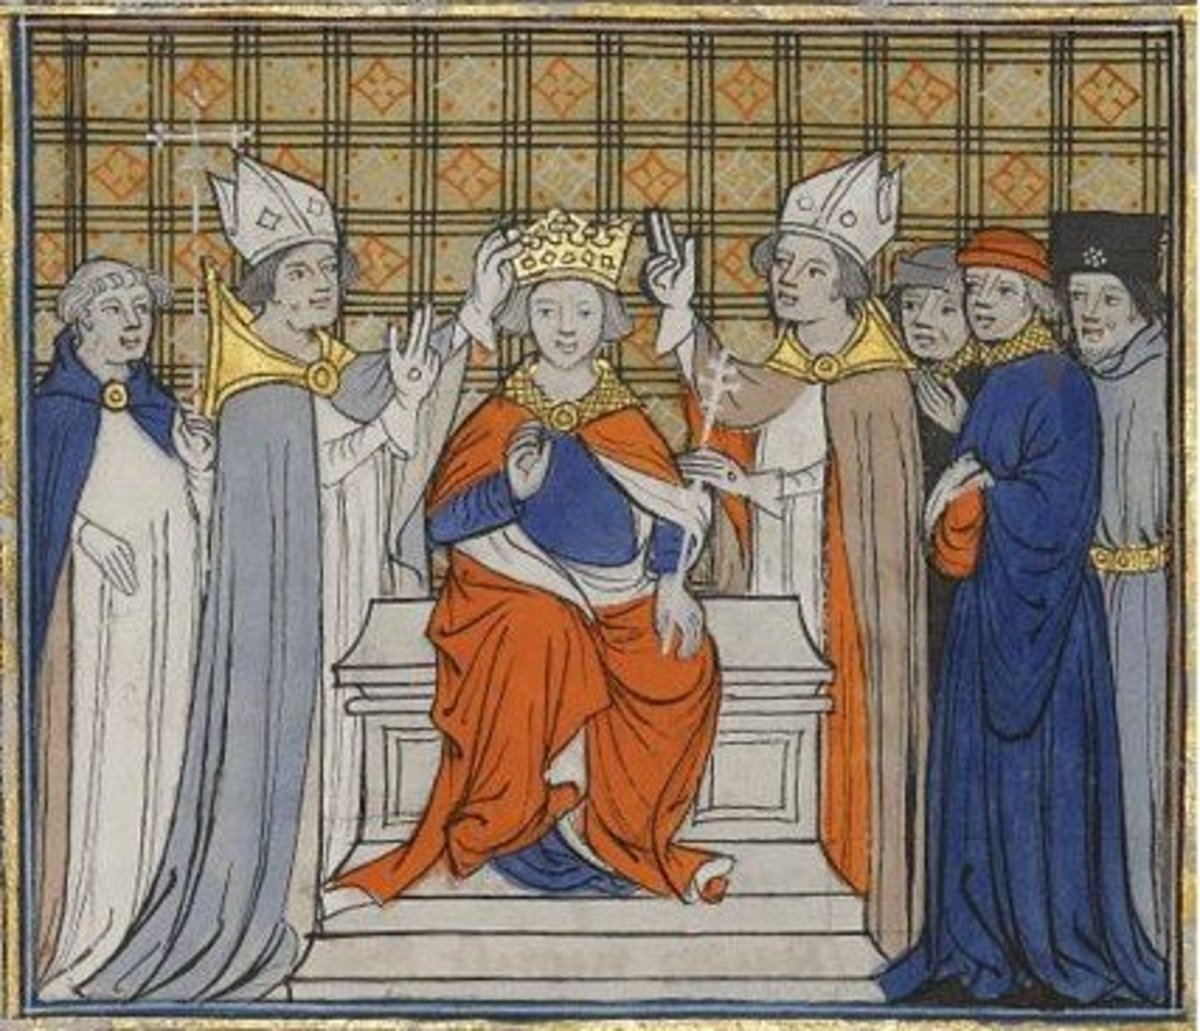 The coronation of monarchs often requires the divine blessing of clergymen.